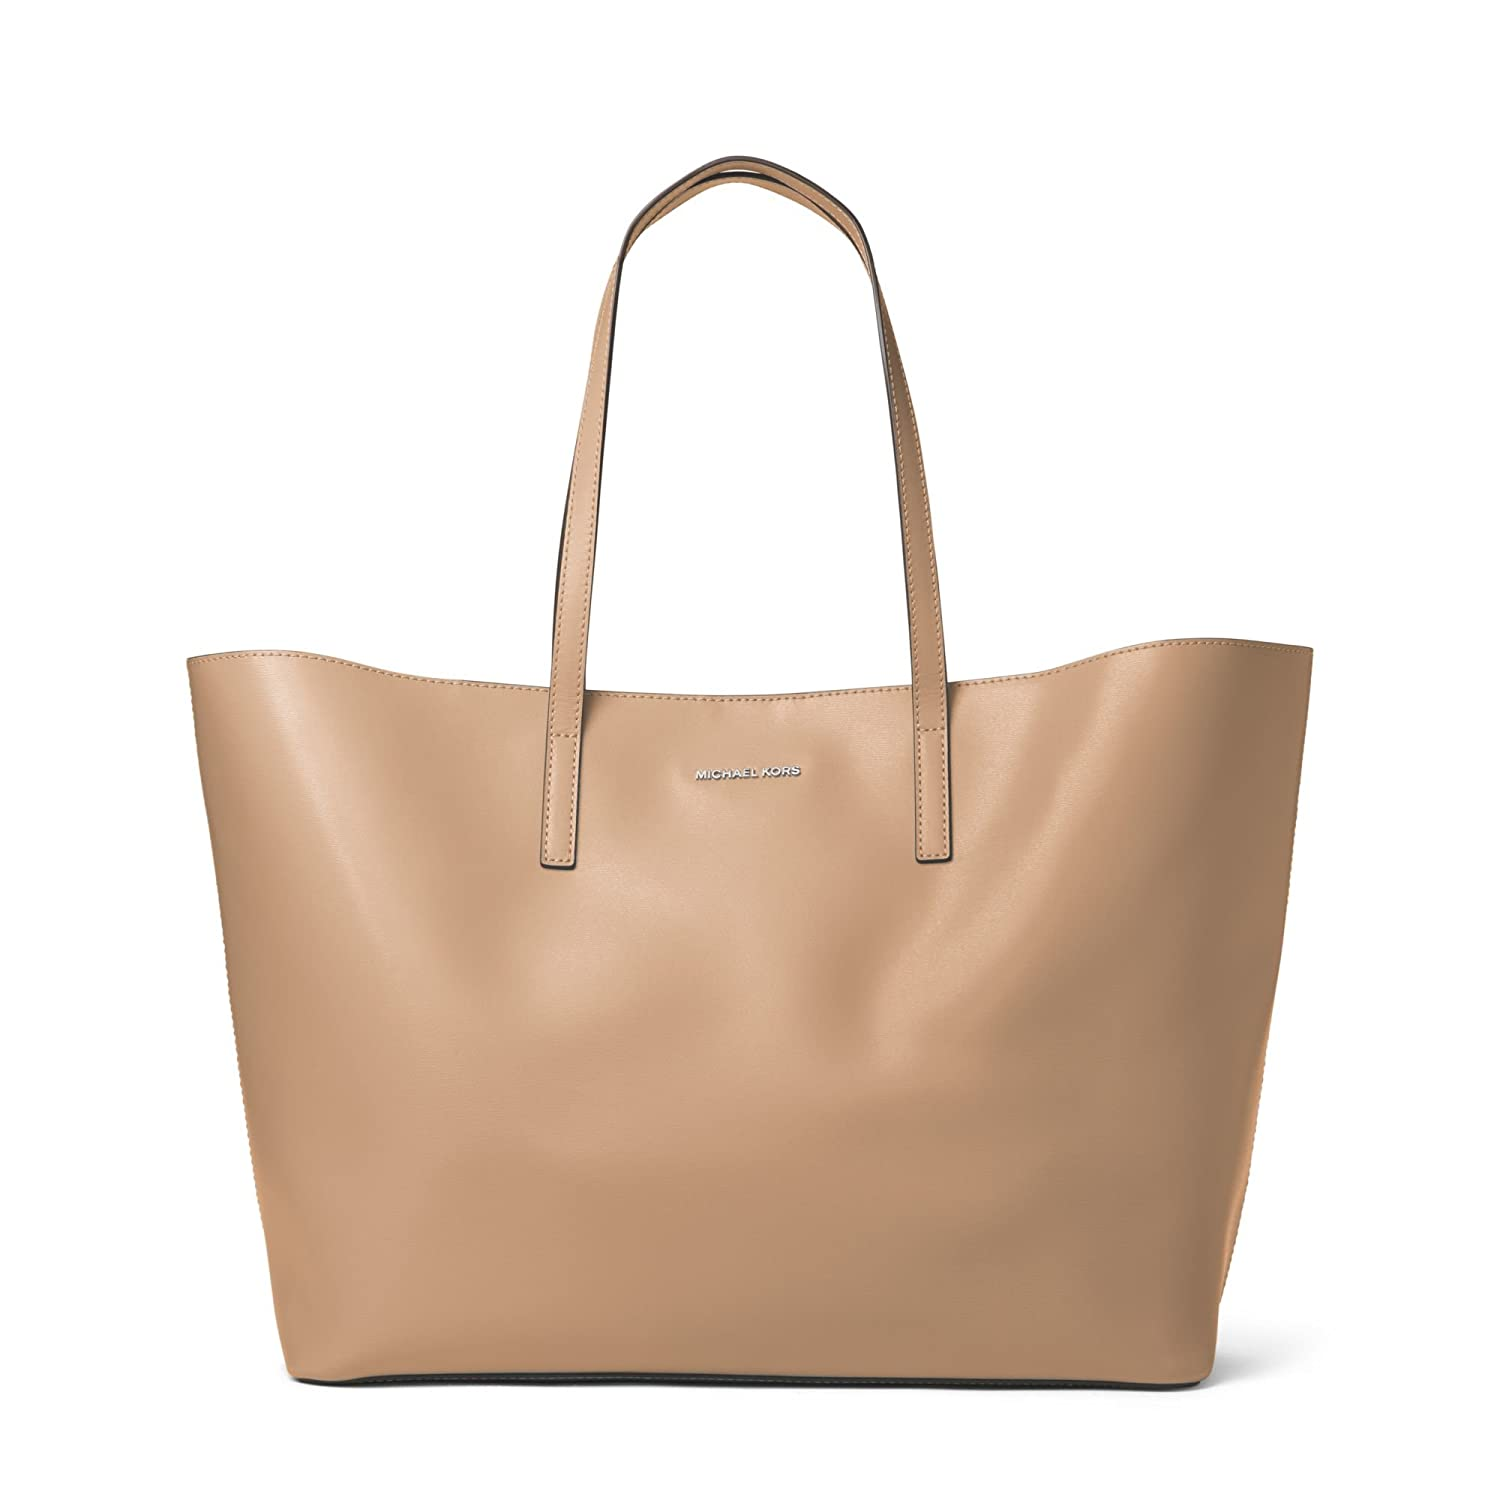 d5a6609eb8dc MICHAEL Michael Kors Emry Extra Large North South Leather Tote in Bisque   Amazon.co.uk  Shoes   Bags